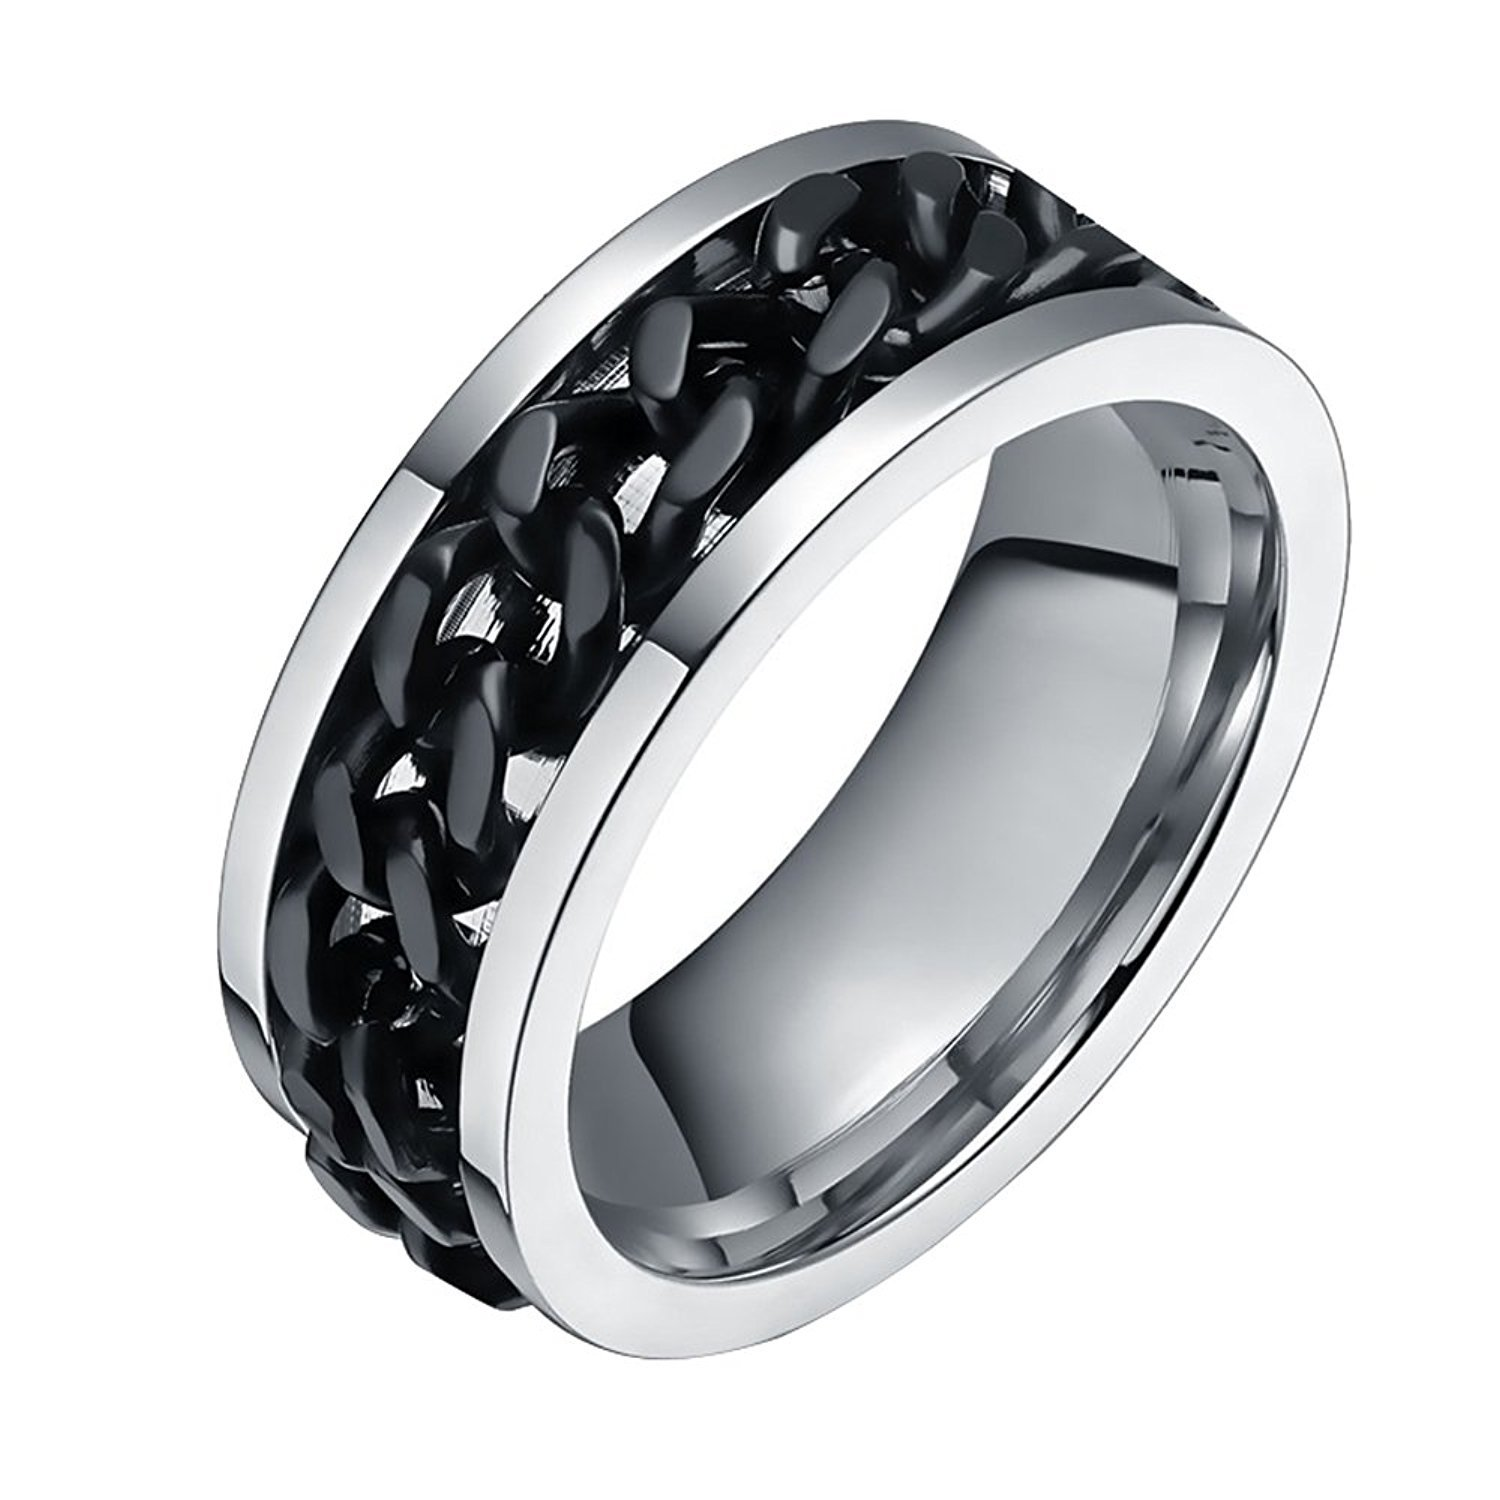 hammer rings band wedding tungsten beveled mens finish zoom ring loading black carbide